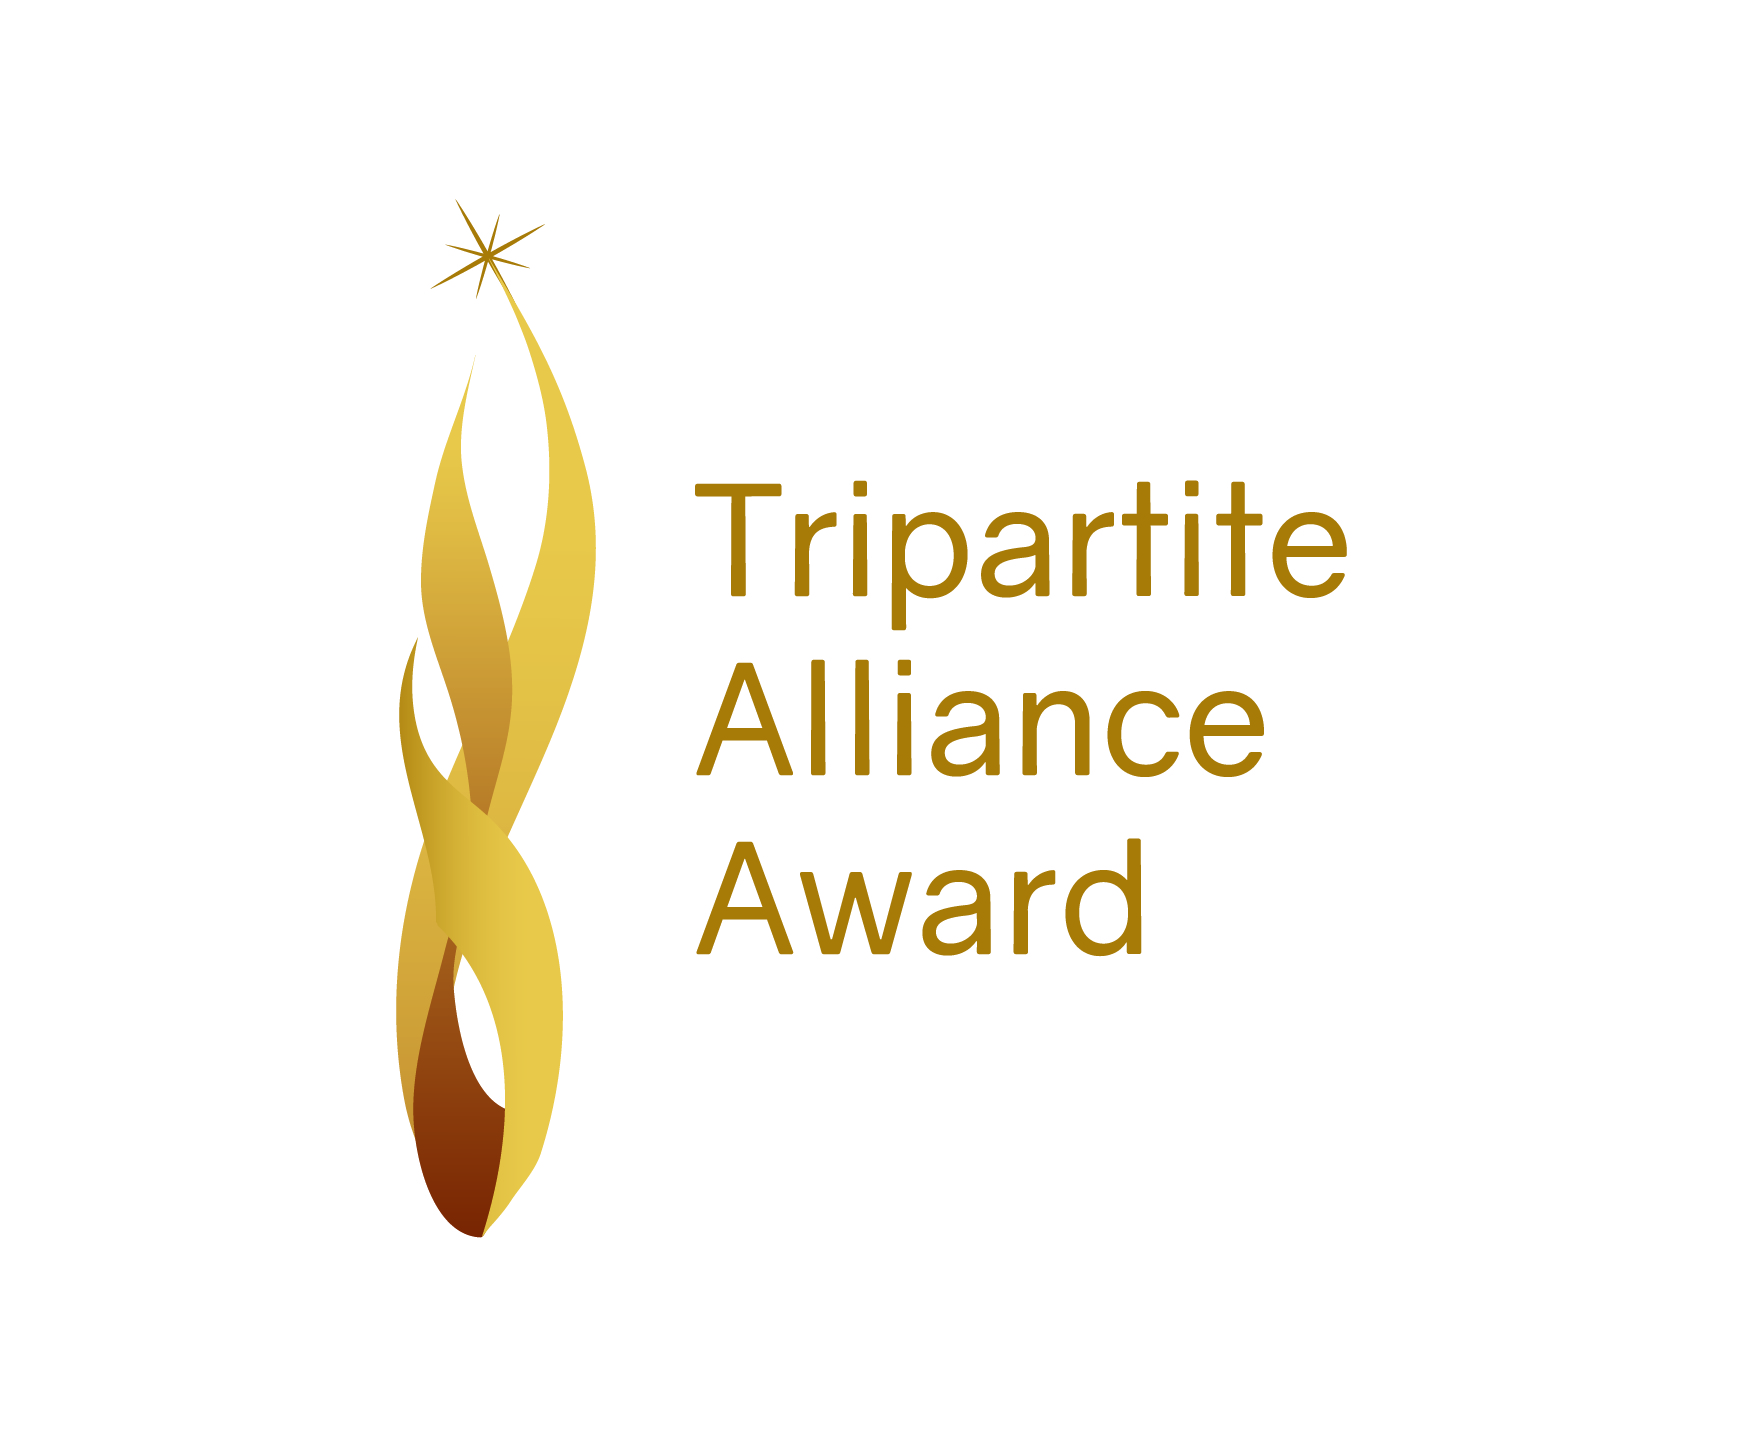 Tripartite Alliance Award logo